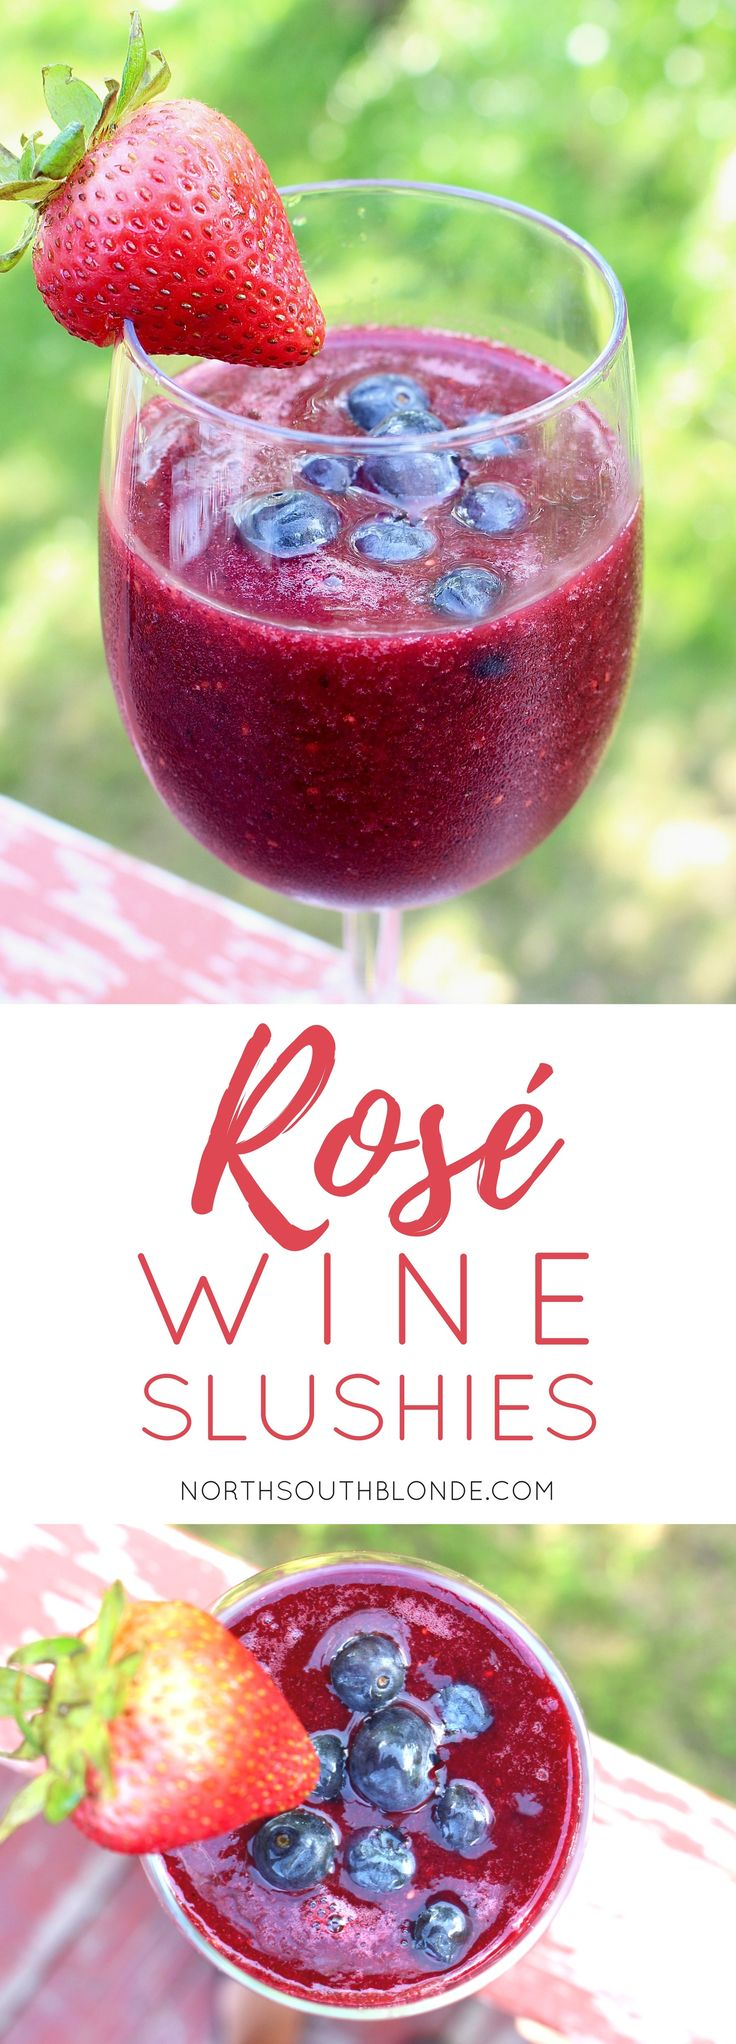 What's better than a slushy on a hot summer day? Wine slushies of course! Just like having a real fruit smoothie, but with more ice and a devilish kick. Because moms need lots of coffee and wine in their lives. Motherhood | Blender | Recipes | Easy | Smoothies | Wine Slushies | Mixed Drinks | Slushy | Summer | Refreshing | Gluten-free | Vegan | Paleo | Healthy | Superfood | Antioxidants | Weight Loss | Healthy | Holiday | Events | Parties | Celebrate | Dessert | Alcohol | Alcoholic Beverages…